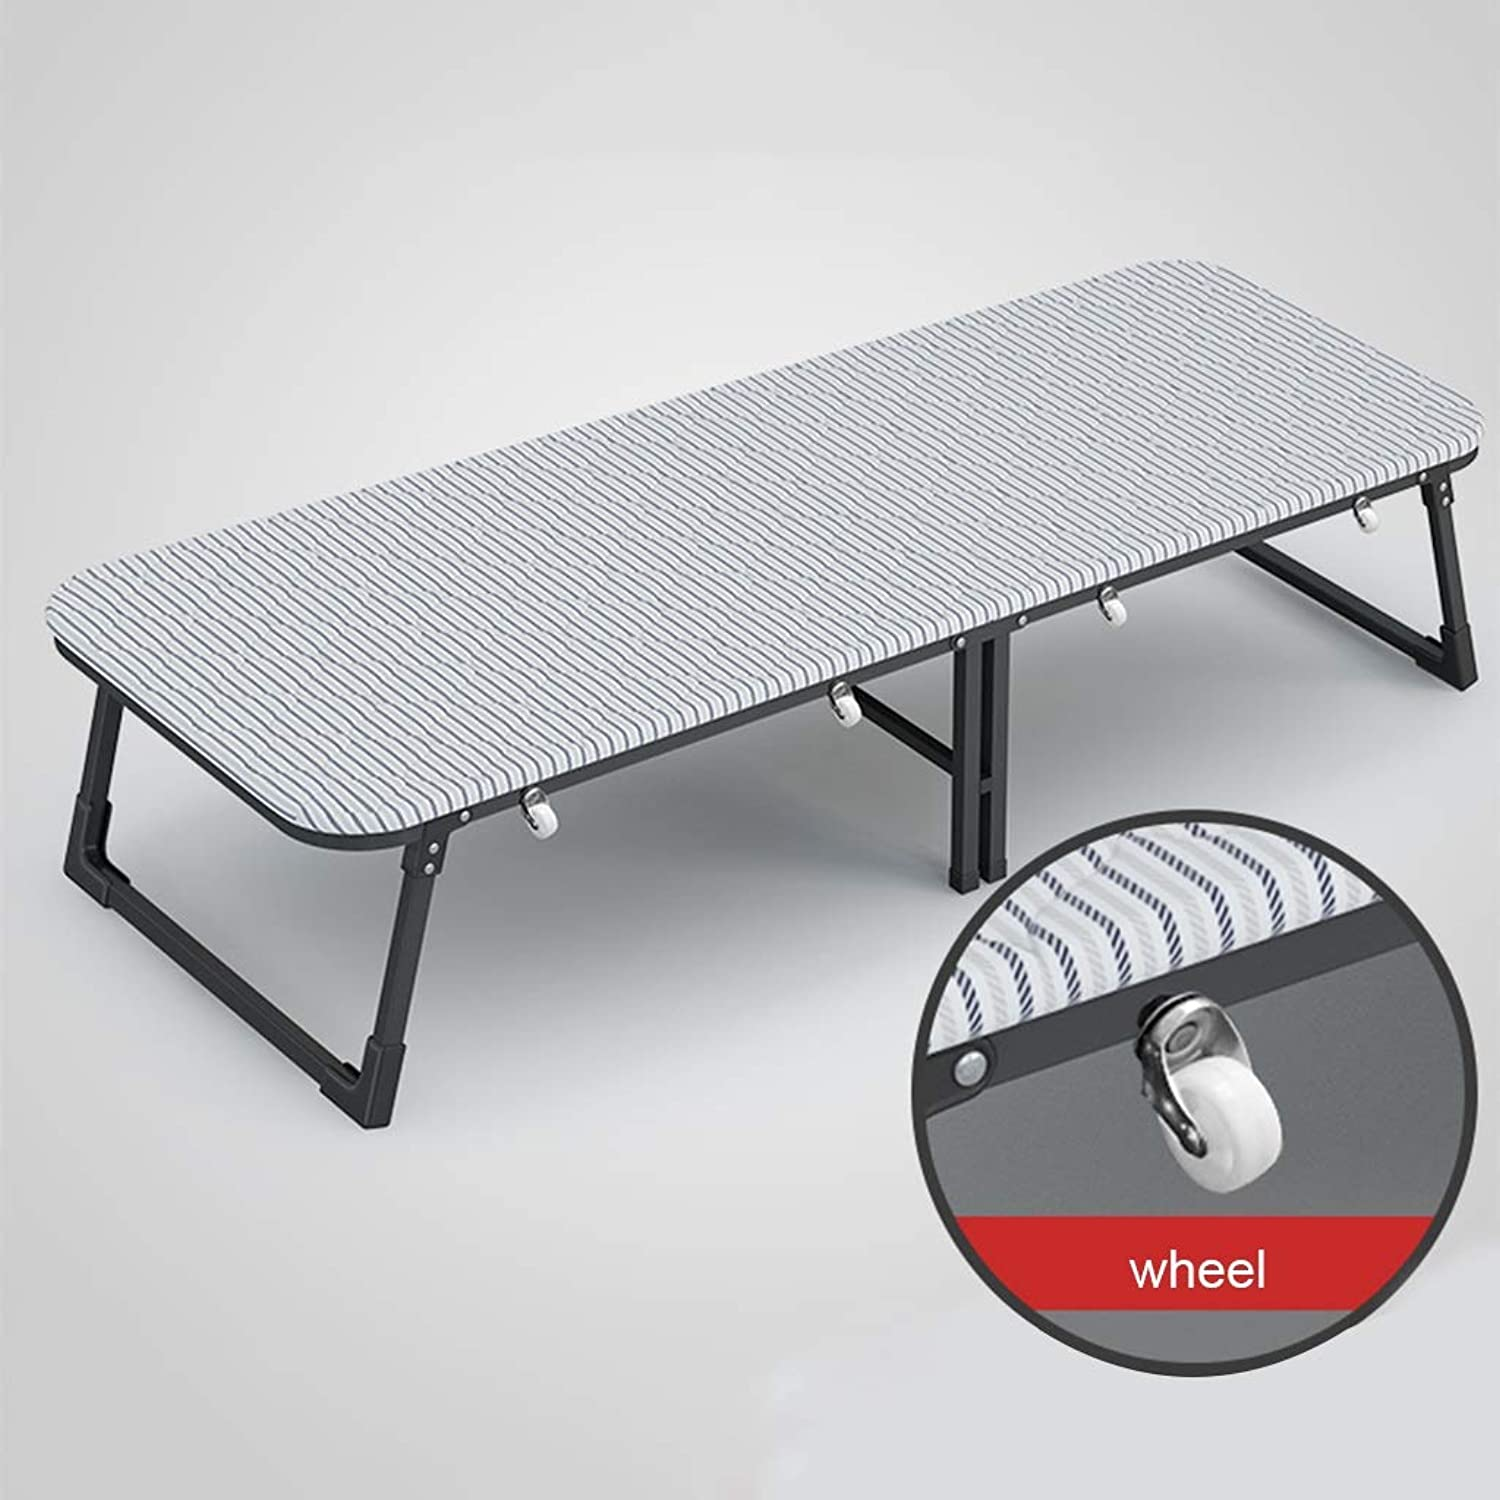 Single Folding Bed Frame with Wheels, Portable Rollaway Bed for Office Lunch Break Camping, Heavy Duty Hardwood Bed (Size   60×185cm)